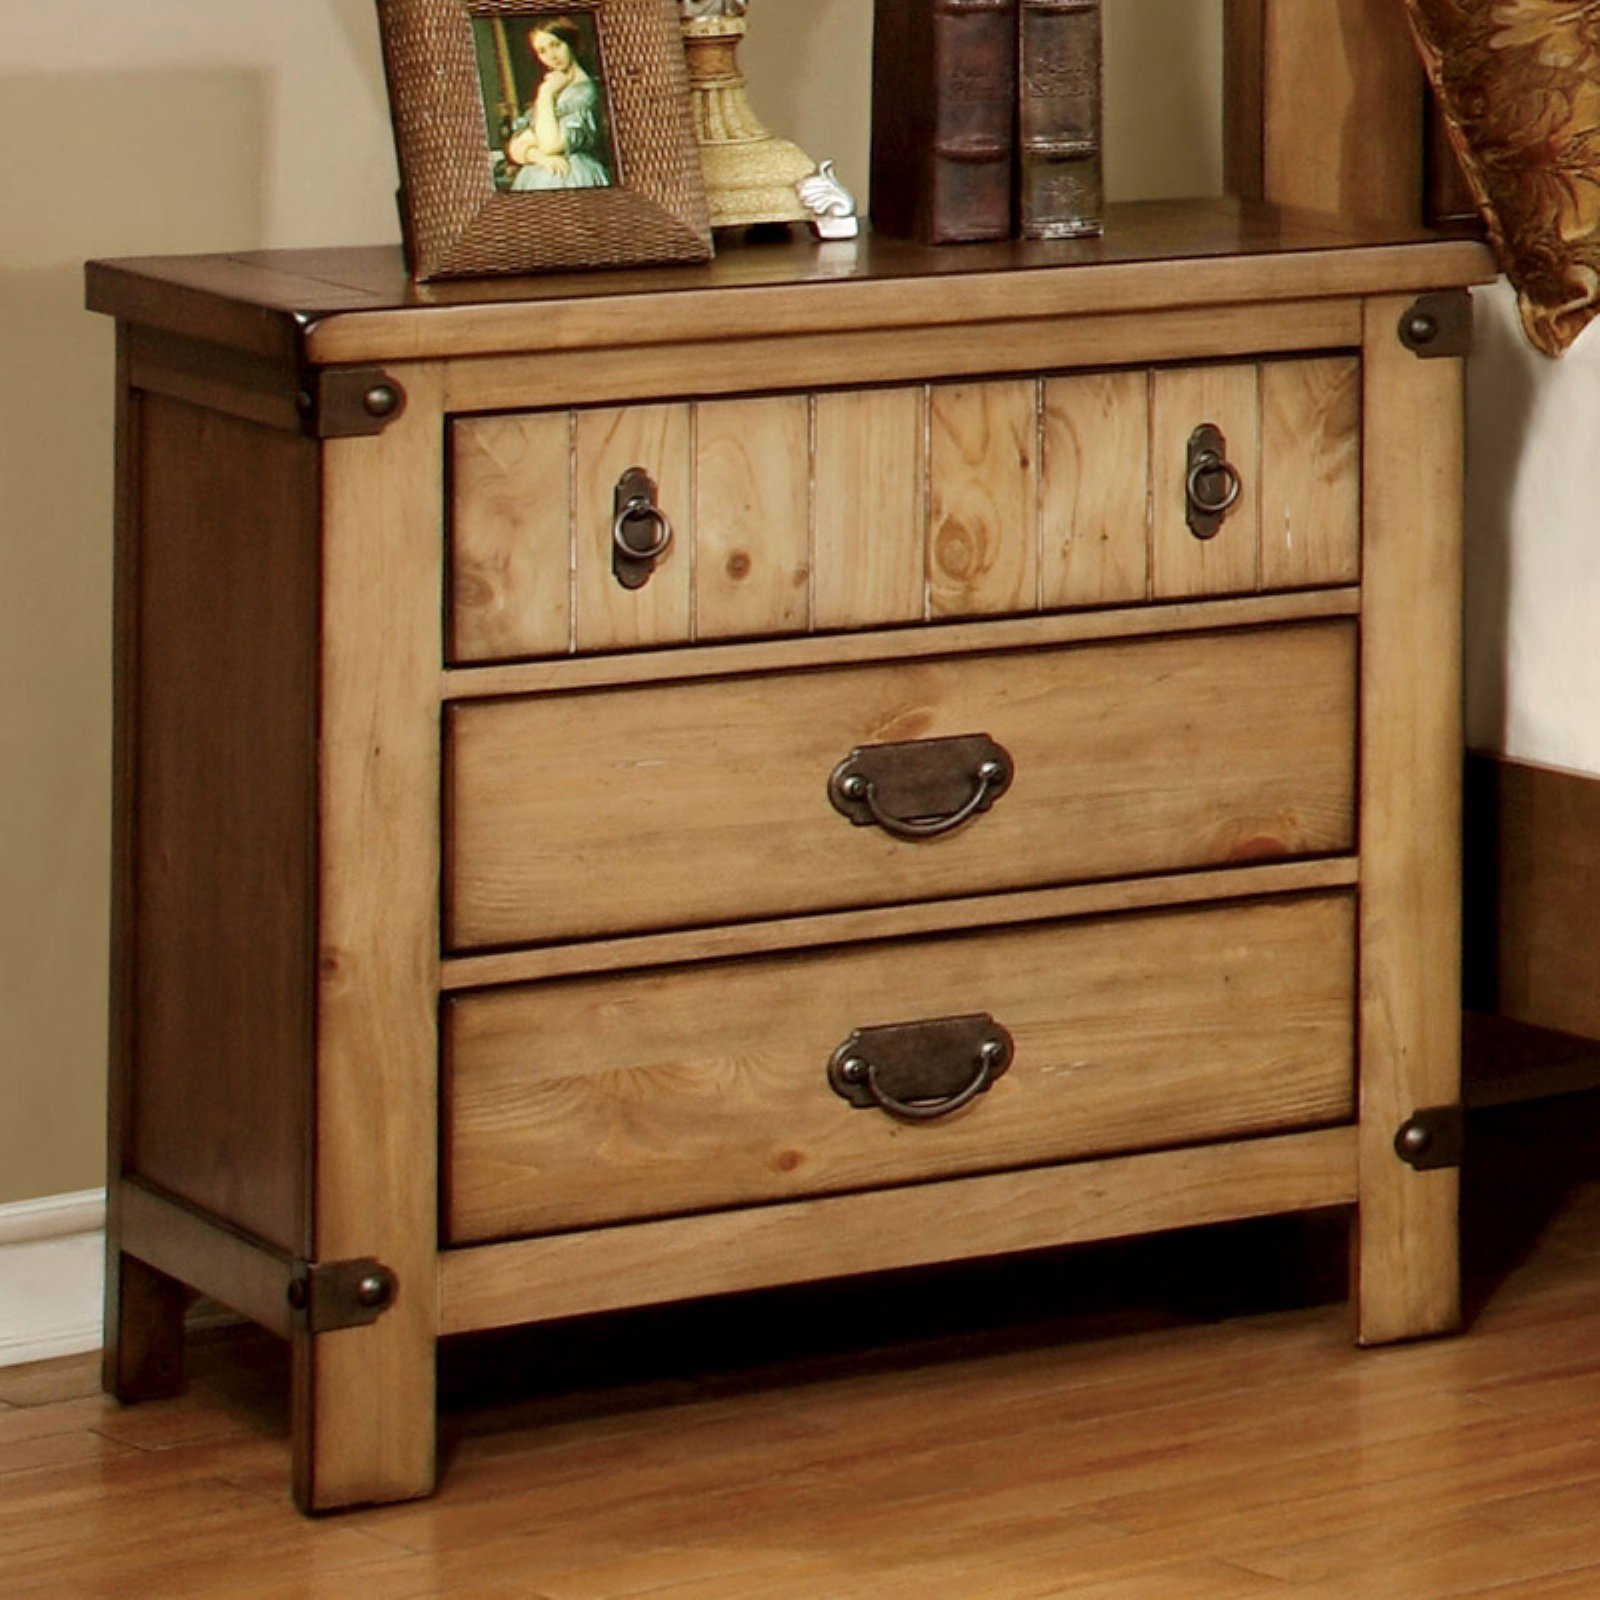 Furniture of America Cauble Antique Pine 3 Drawer Nightstand